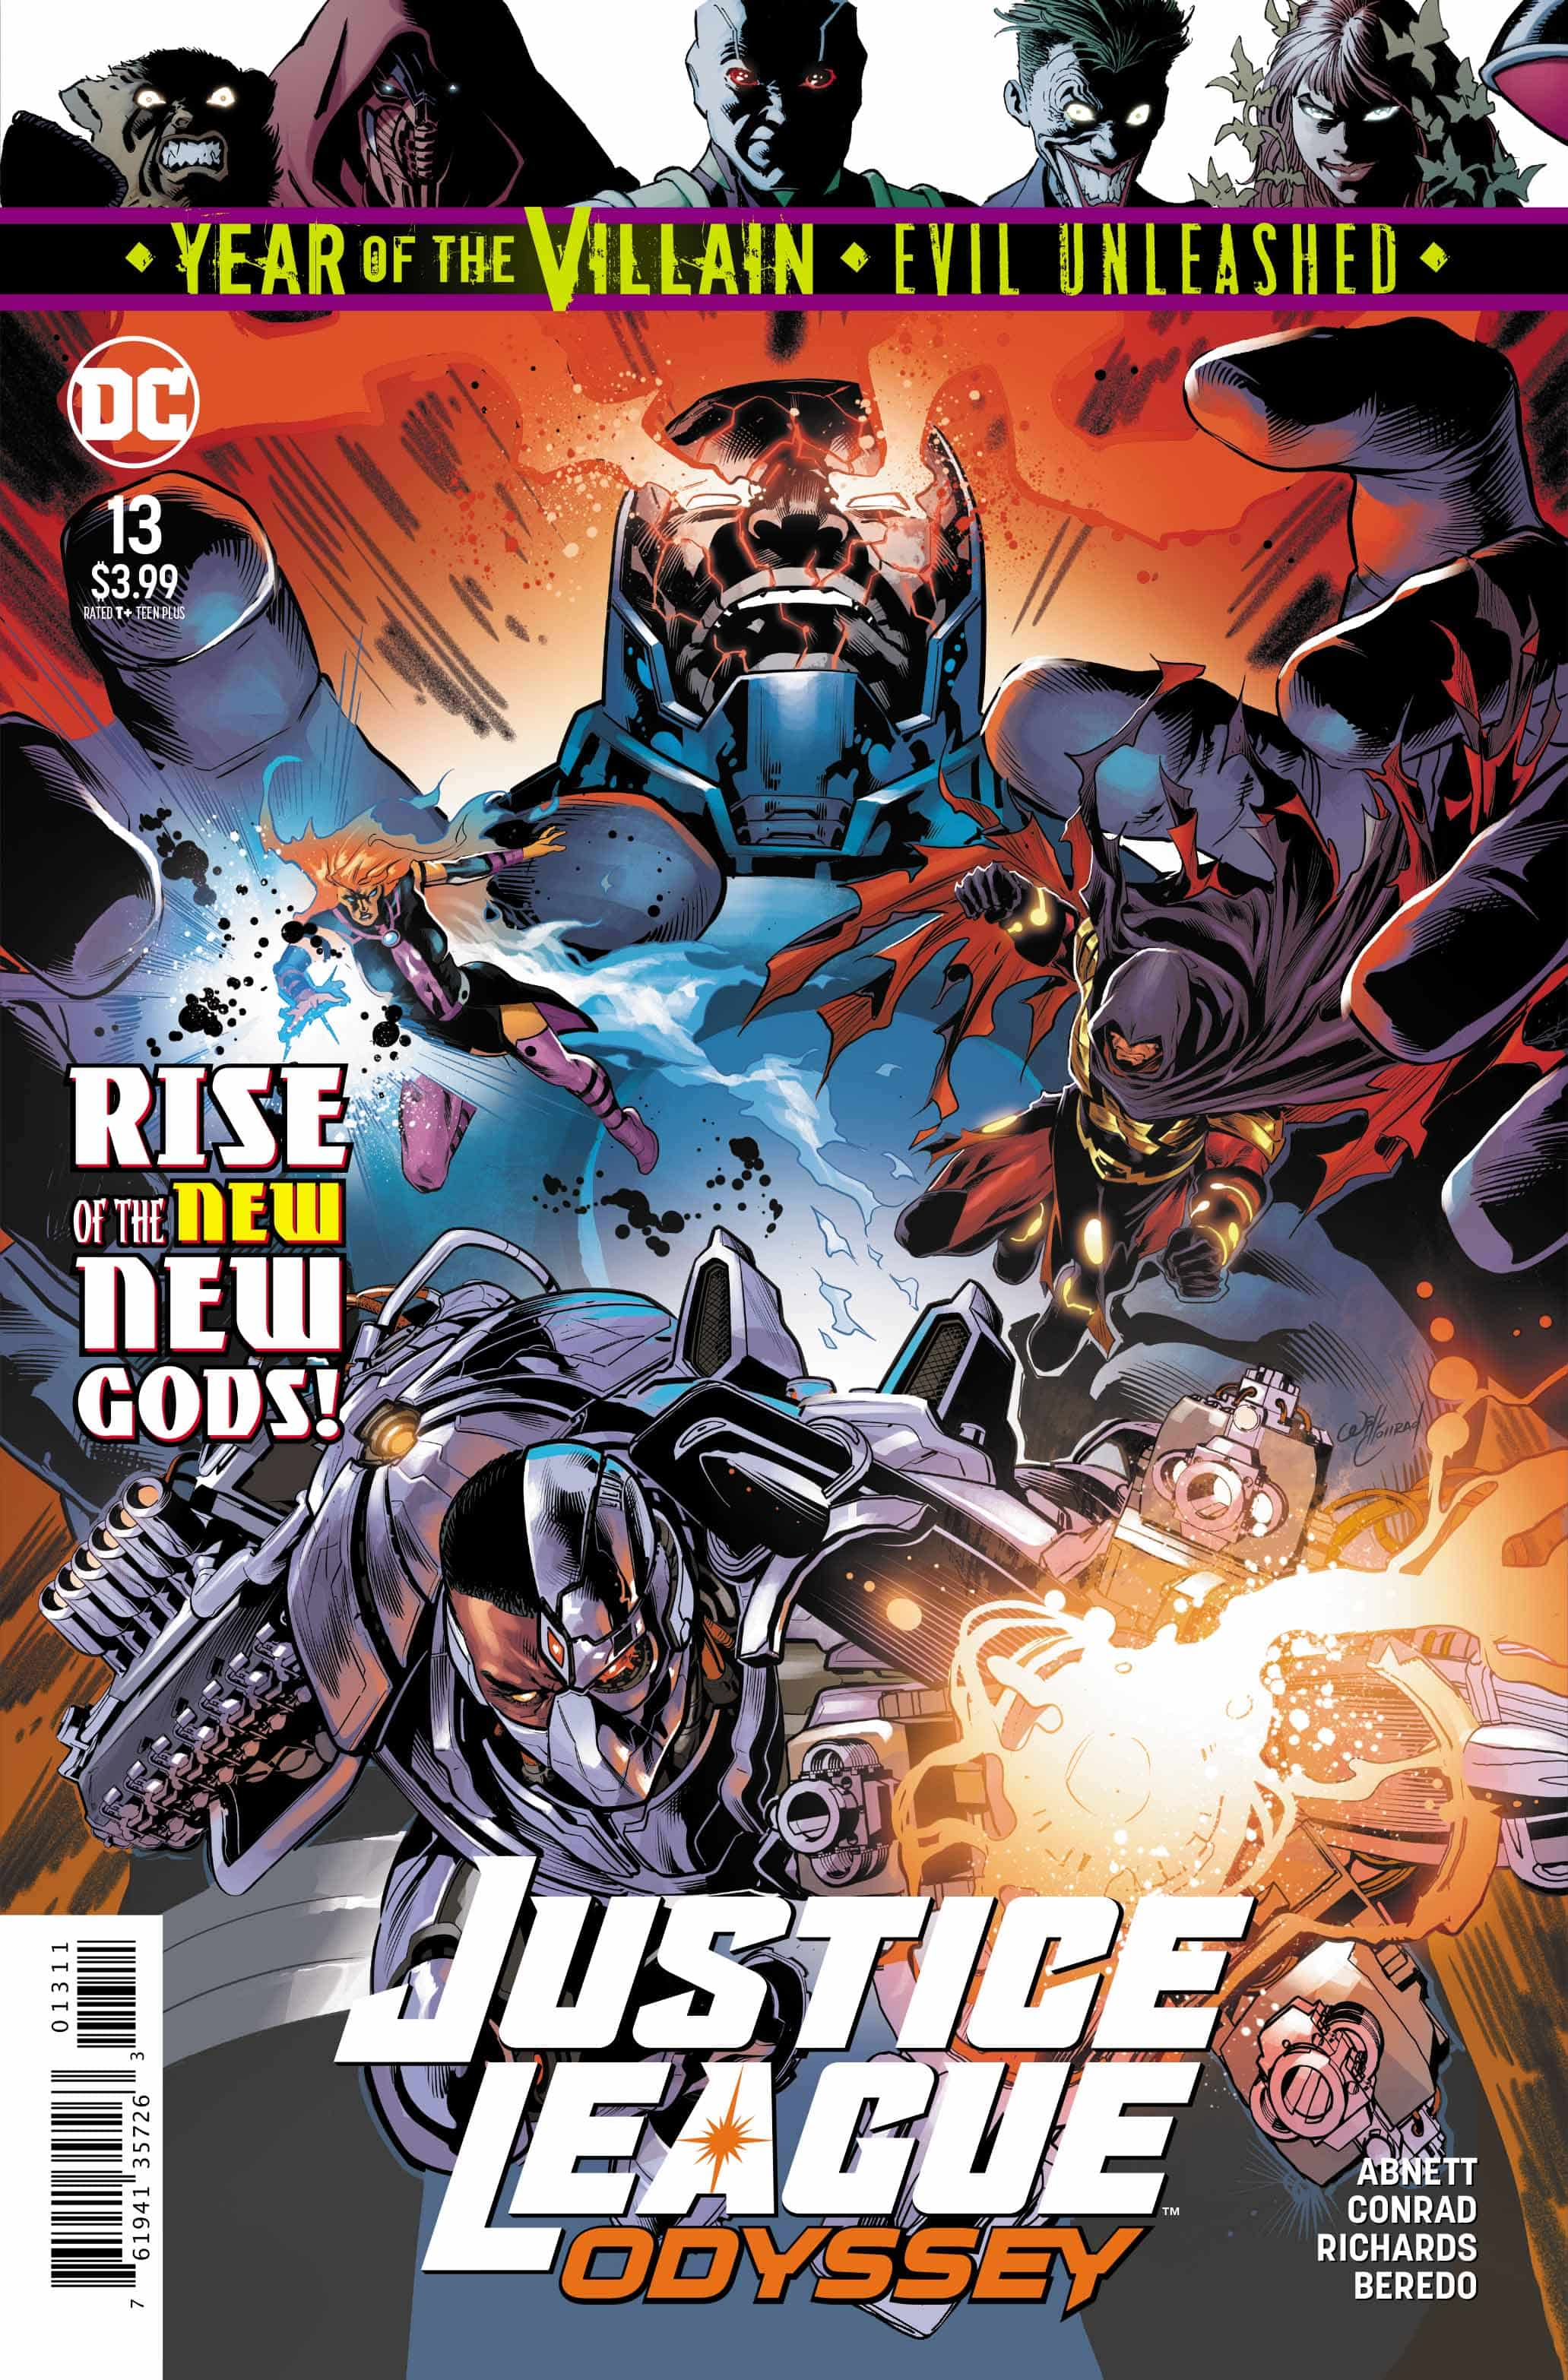 Justice League Odyssey #13 Review